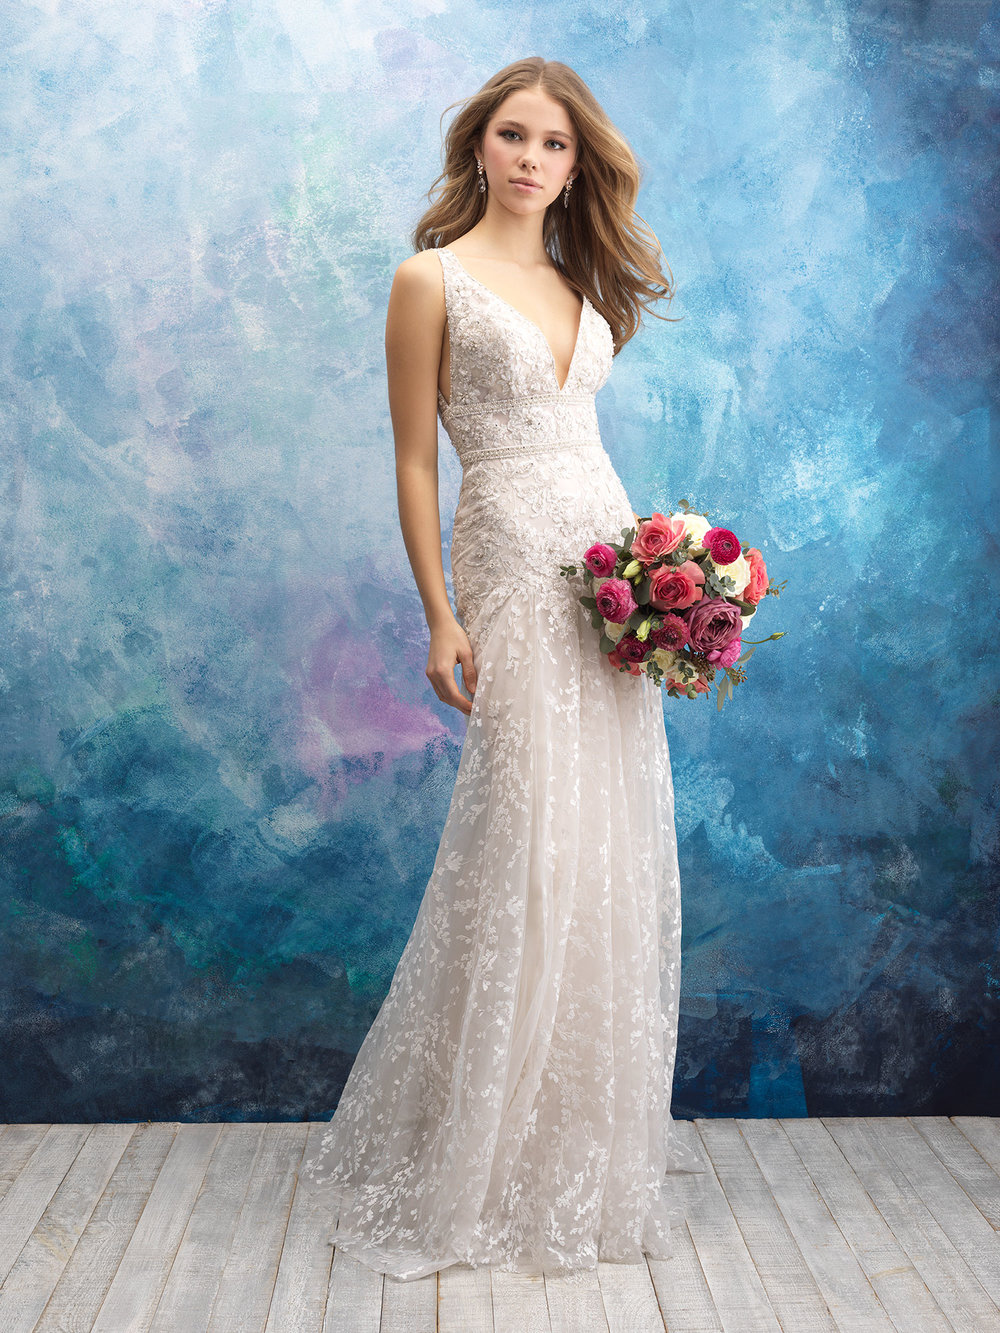 Style: 9572 - A wealth of textures draws the eye to this airy, sleeveless gown.